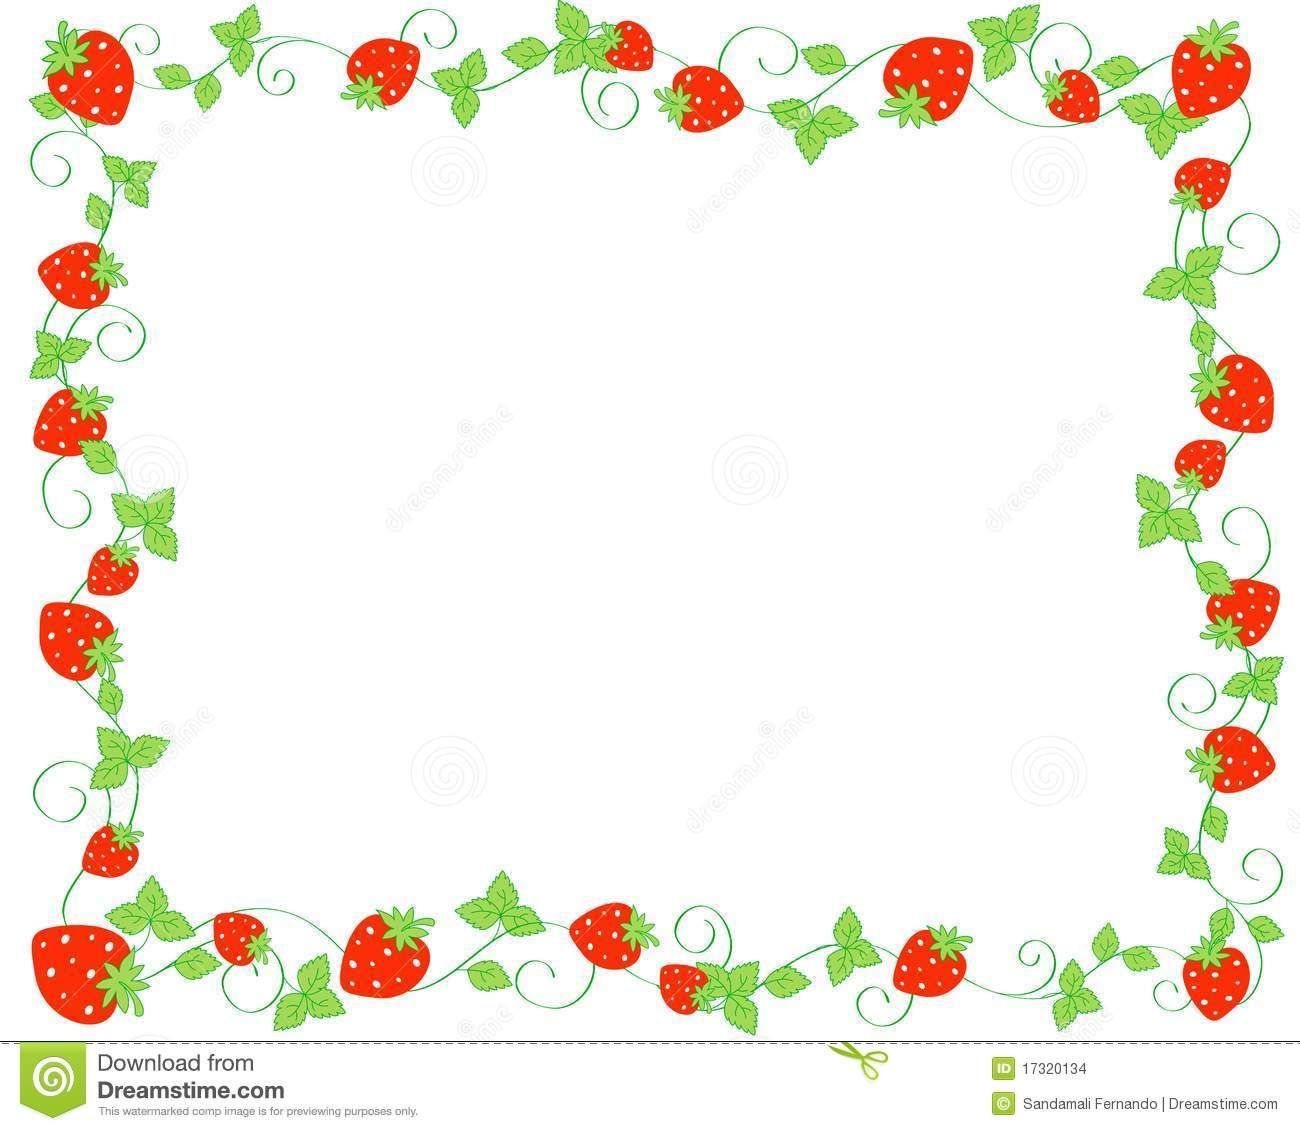 Strawberries clipart borders. Strawberry images clip art